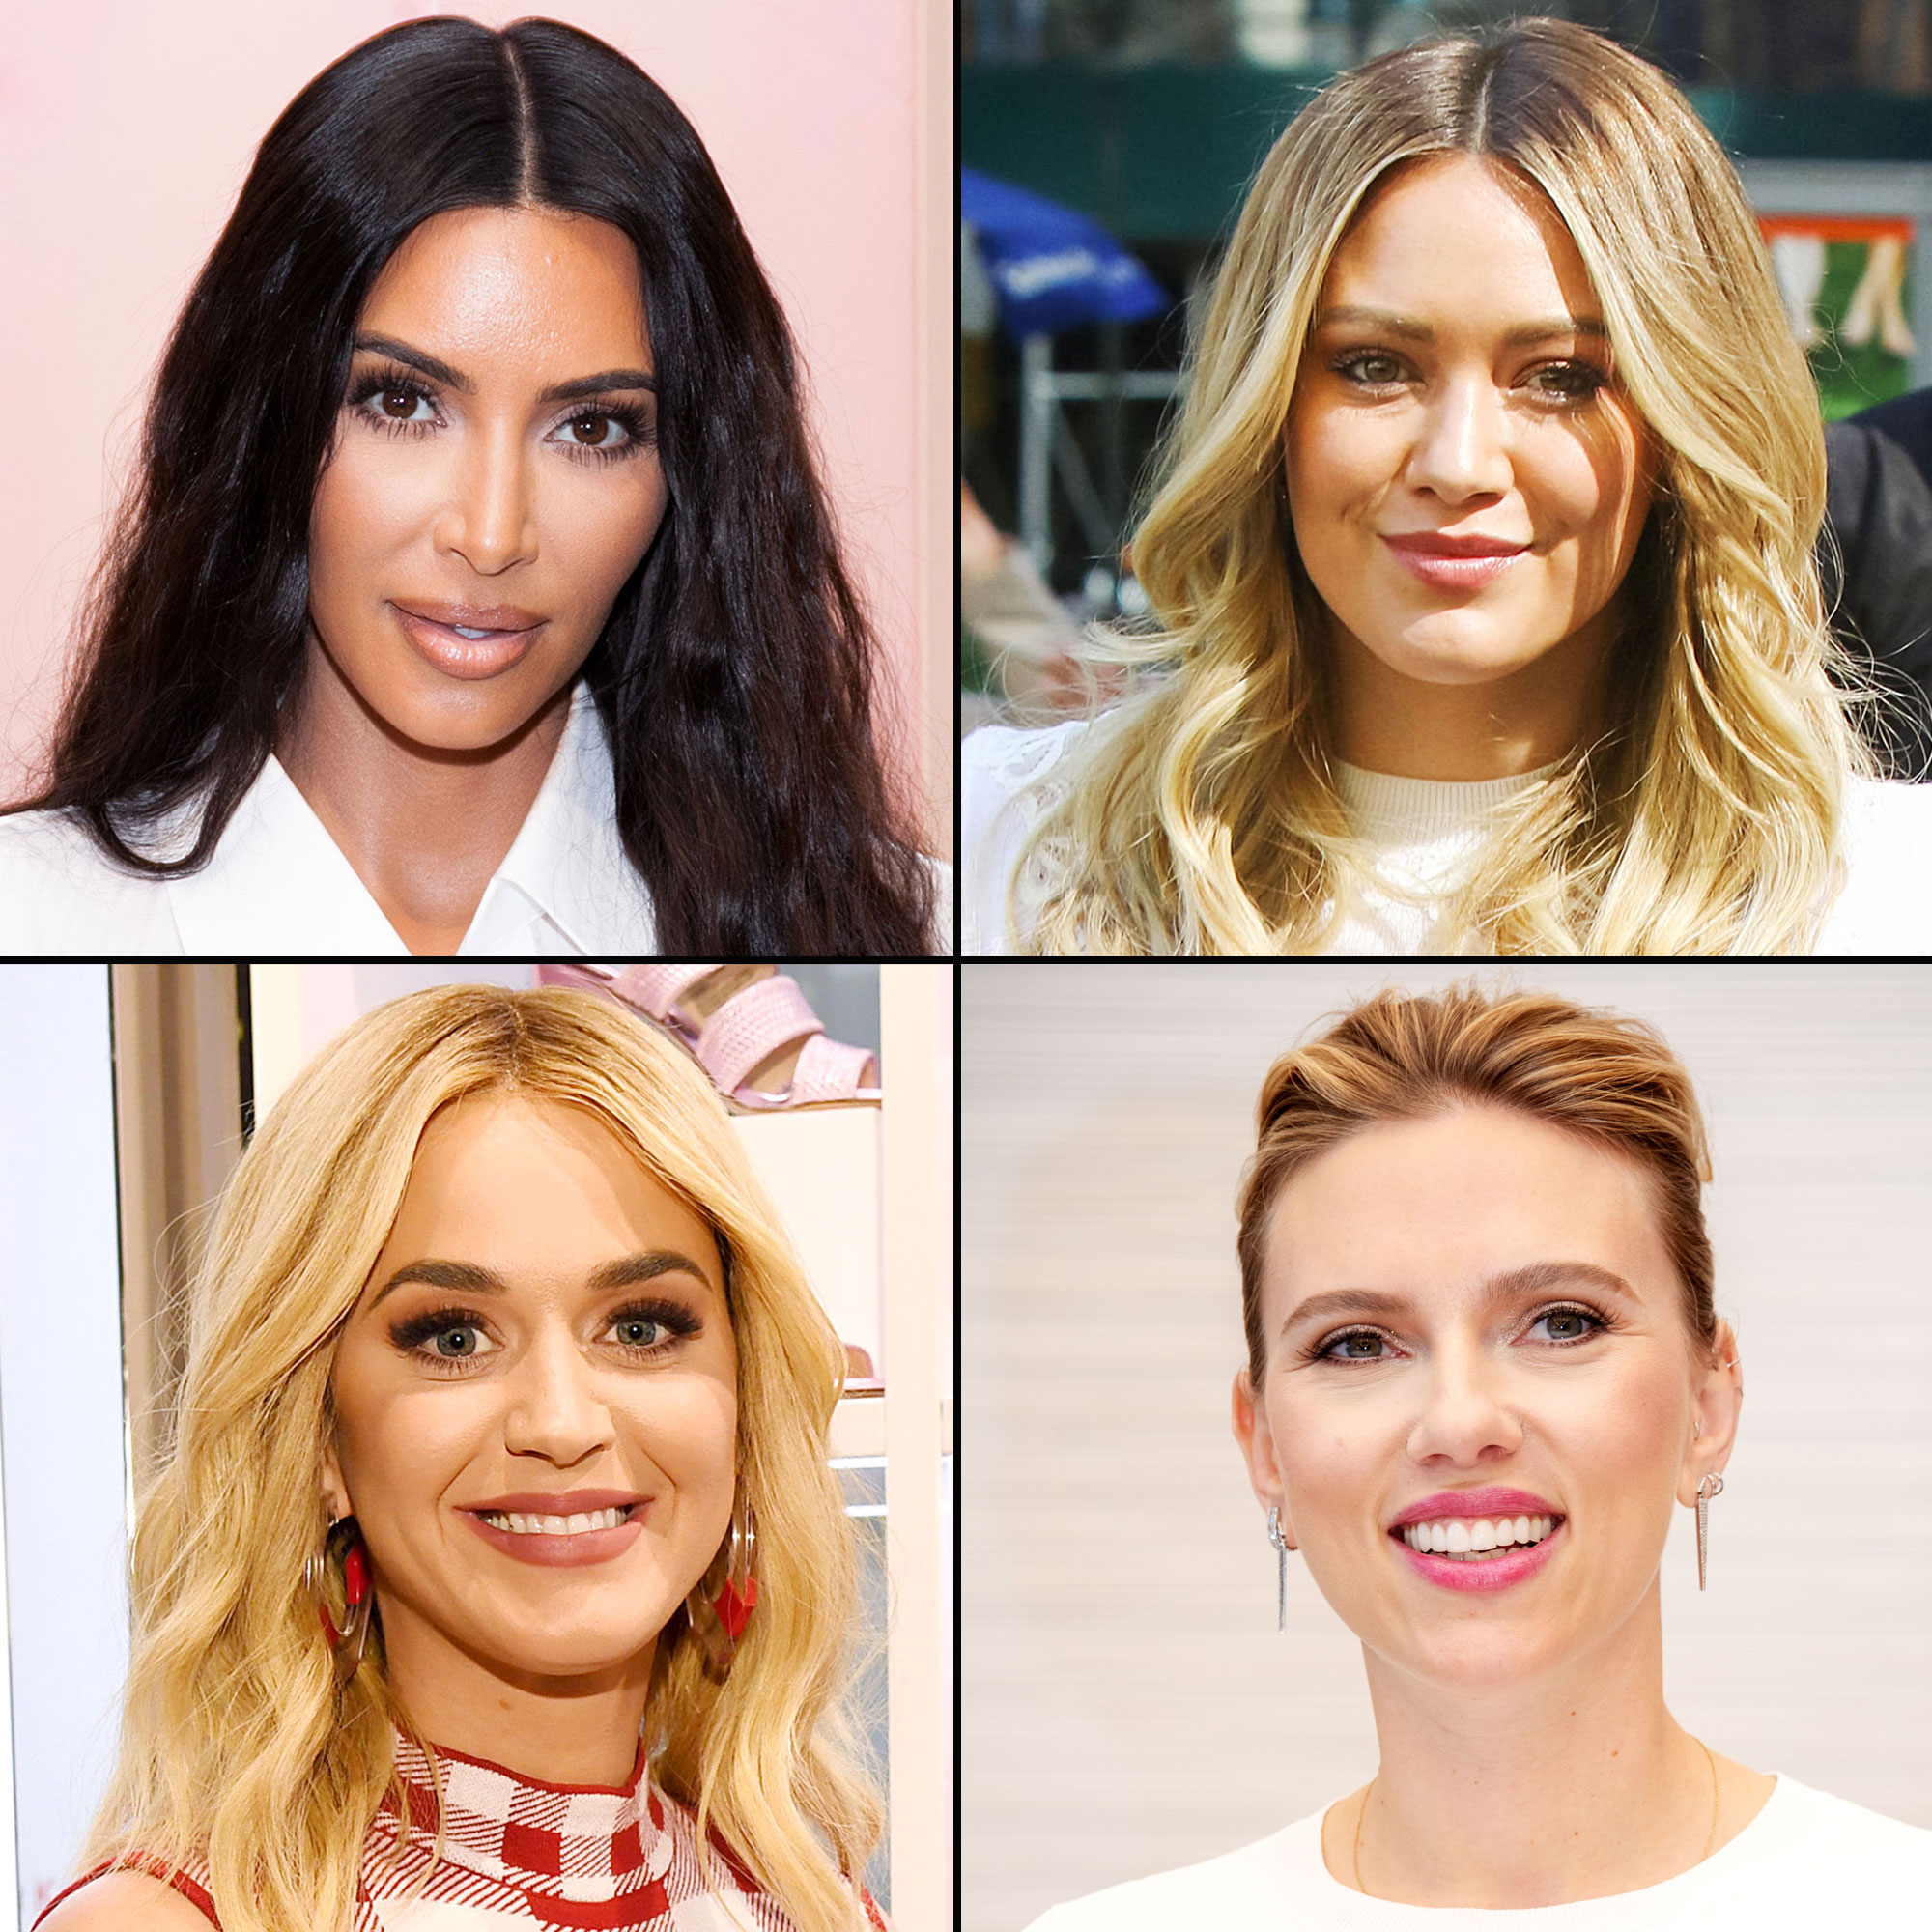 Celebrities Who Swear By Apple Cider Vinegar - Celebrities including Kourtney Kardashian and Scarlett Johansson have long touted the benefits of apple cider vinegar. But once Kim Kardashian got on the bandwagon with an Instagram Story featuring Bragg's Apple Cider Vinegar in May 2019, the organic, raw, unfiltered vinegar became poised to break through to the mainstream.